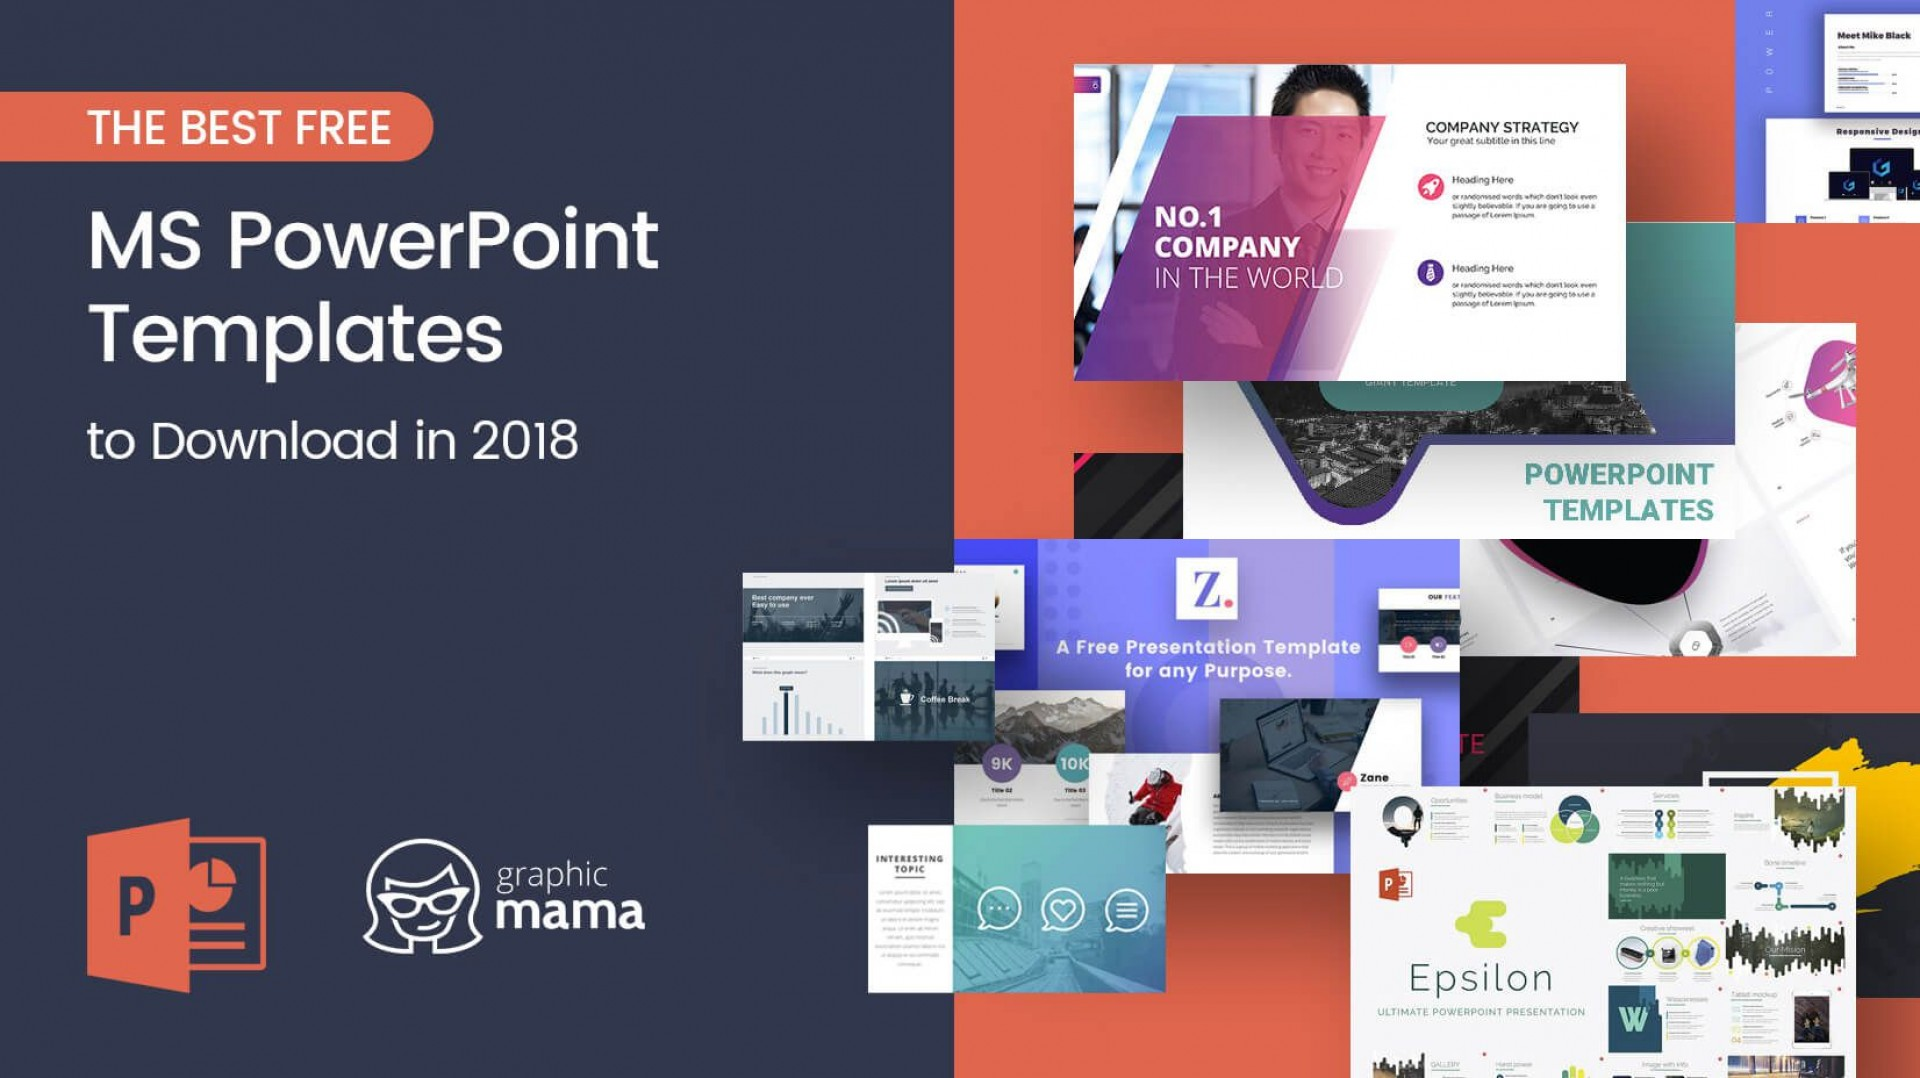 009 Awesome Power Point Presentation Template Free High Resolution  Powerpoint Layout Download 2019 Modern Busines1920